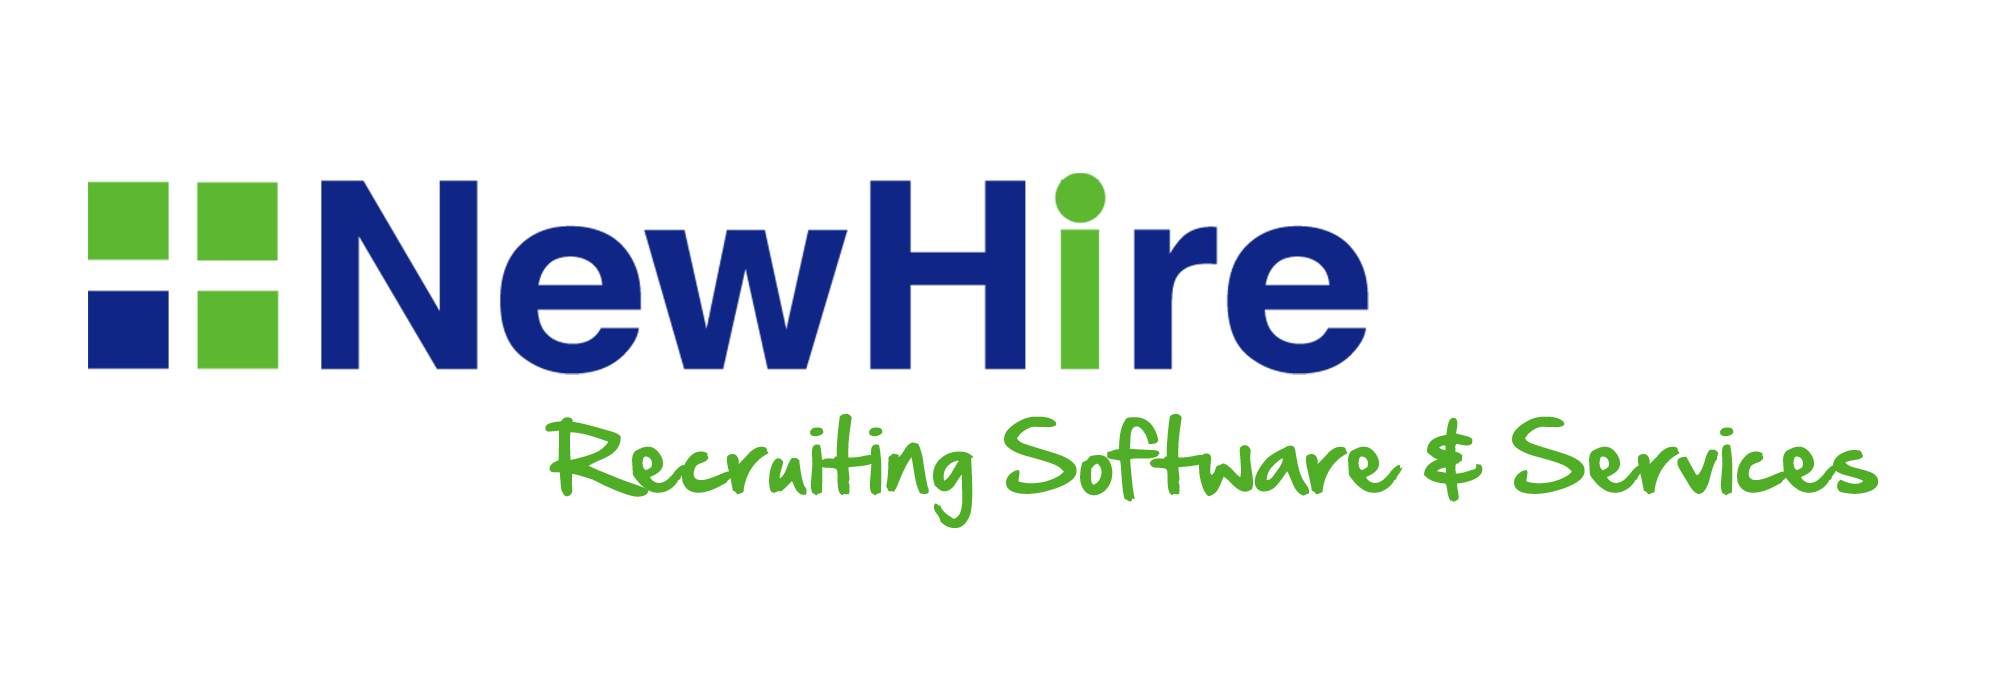 NewHire_logo_and_tagline_high_quality